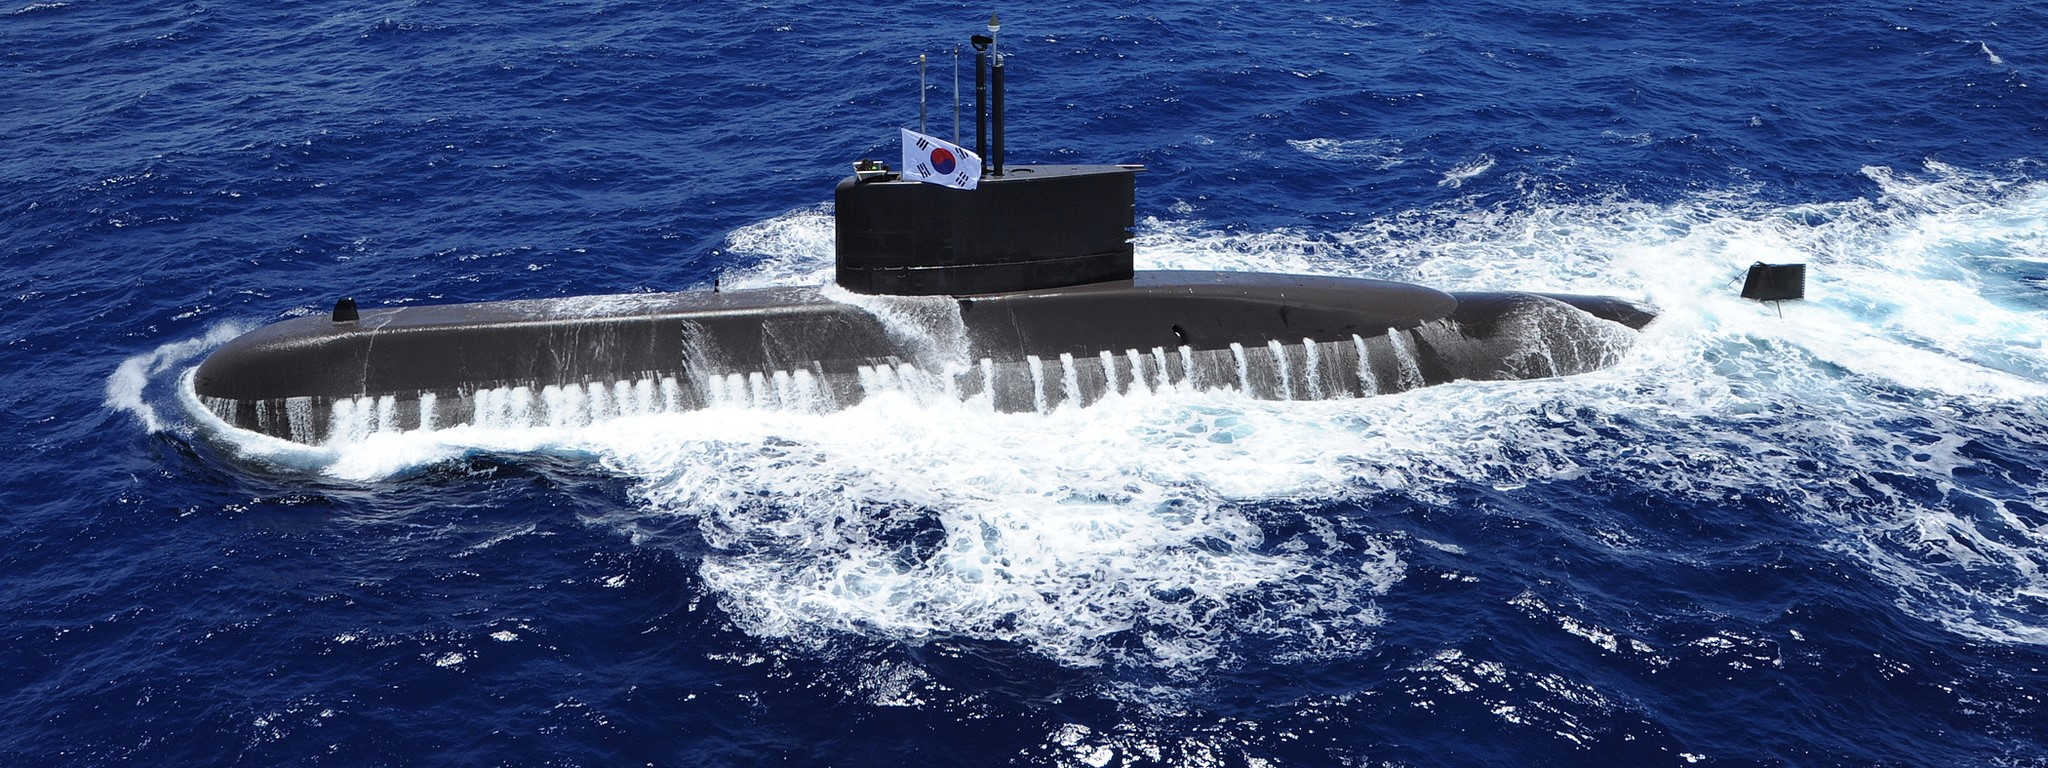 A South Korean Type-214 submarine. (Flickr/US Pacific Fleet)